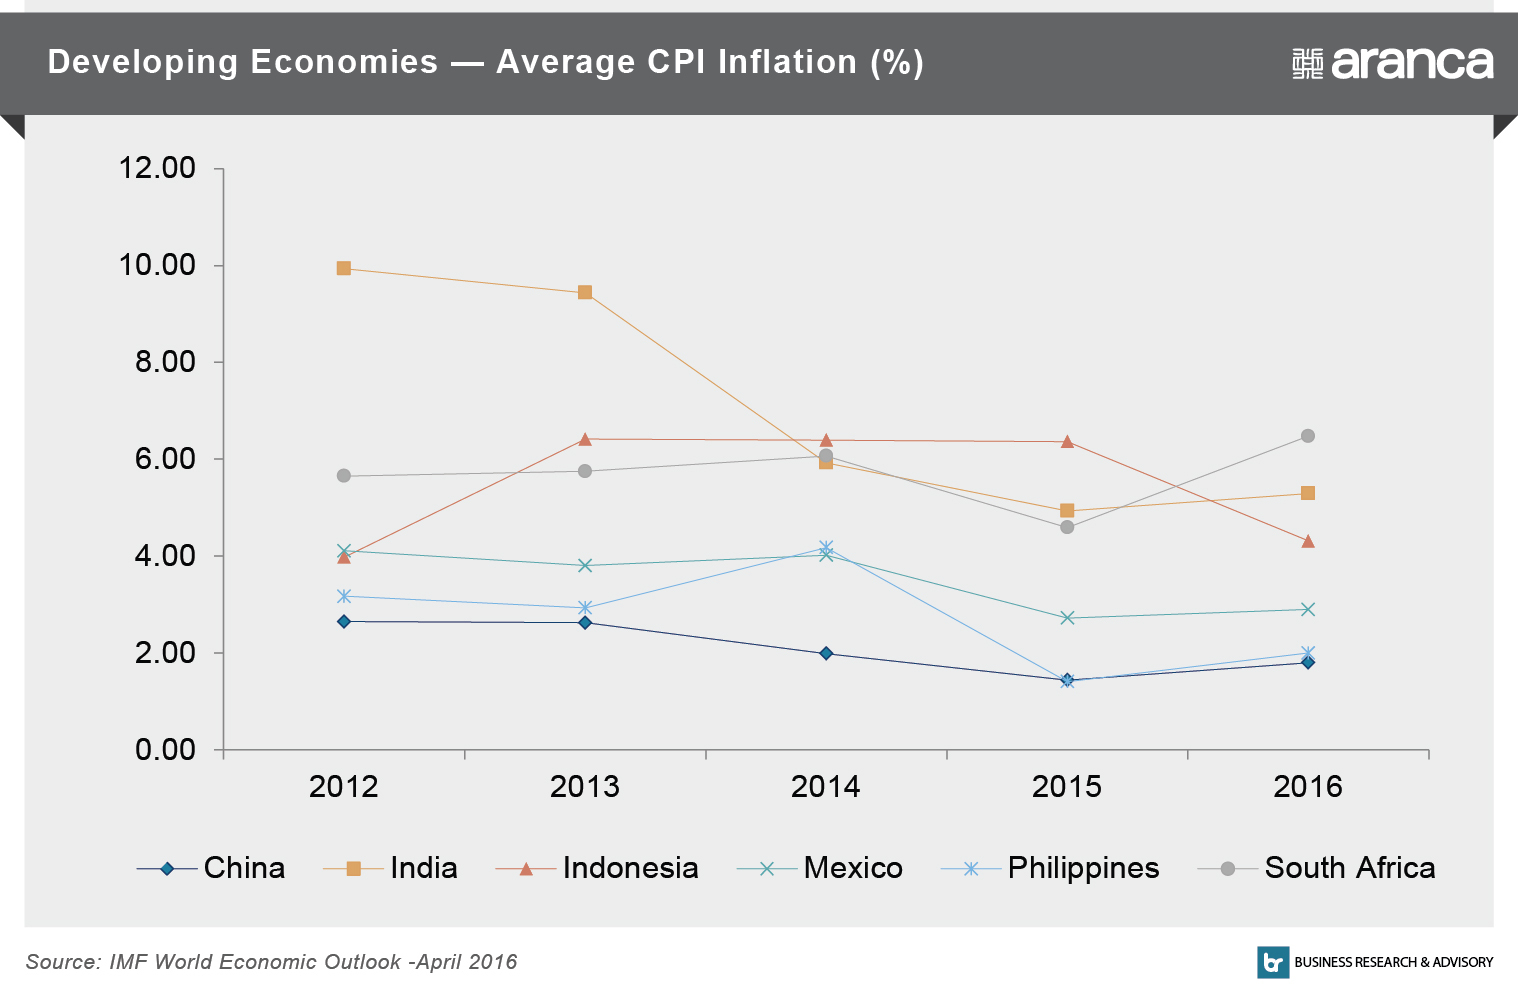 40b2594049f Developing Economies - Average CPI Inflation (%)